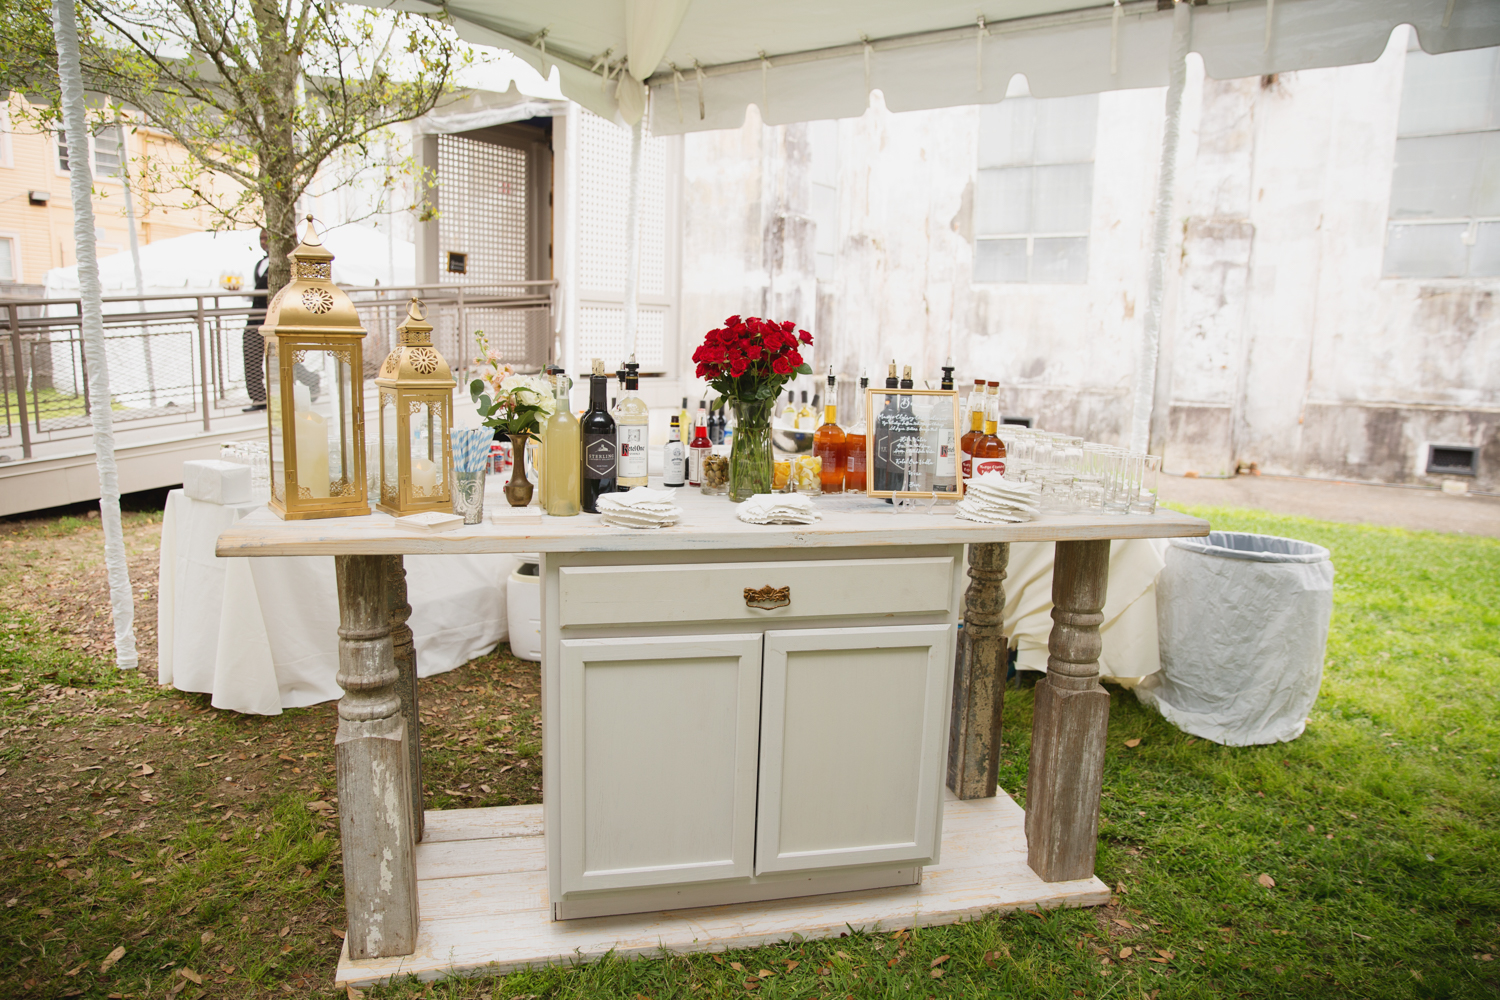 Southern Fete, Southern Wedding, Distressed Rentals, Firefly Ambiance, Debbie does Doberge, E Ray Photo